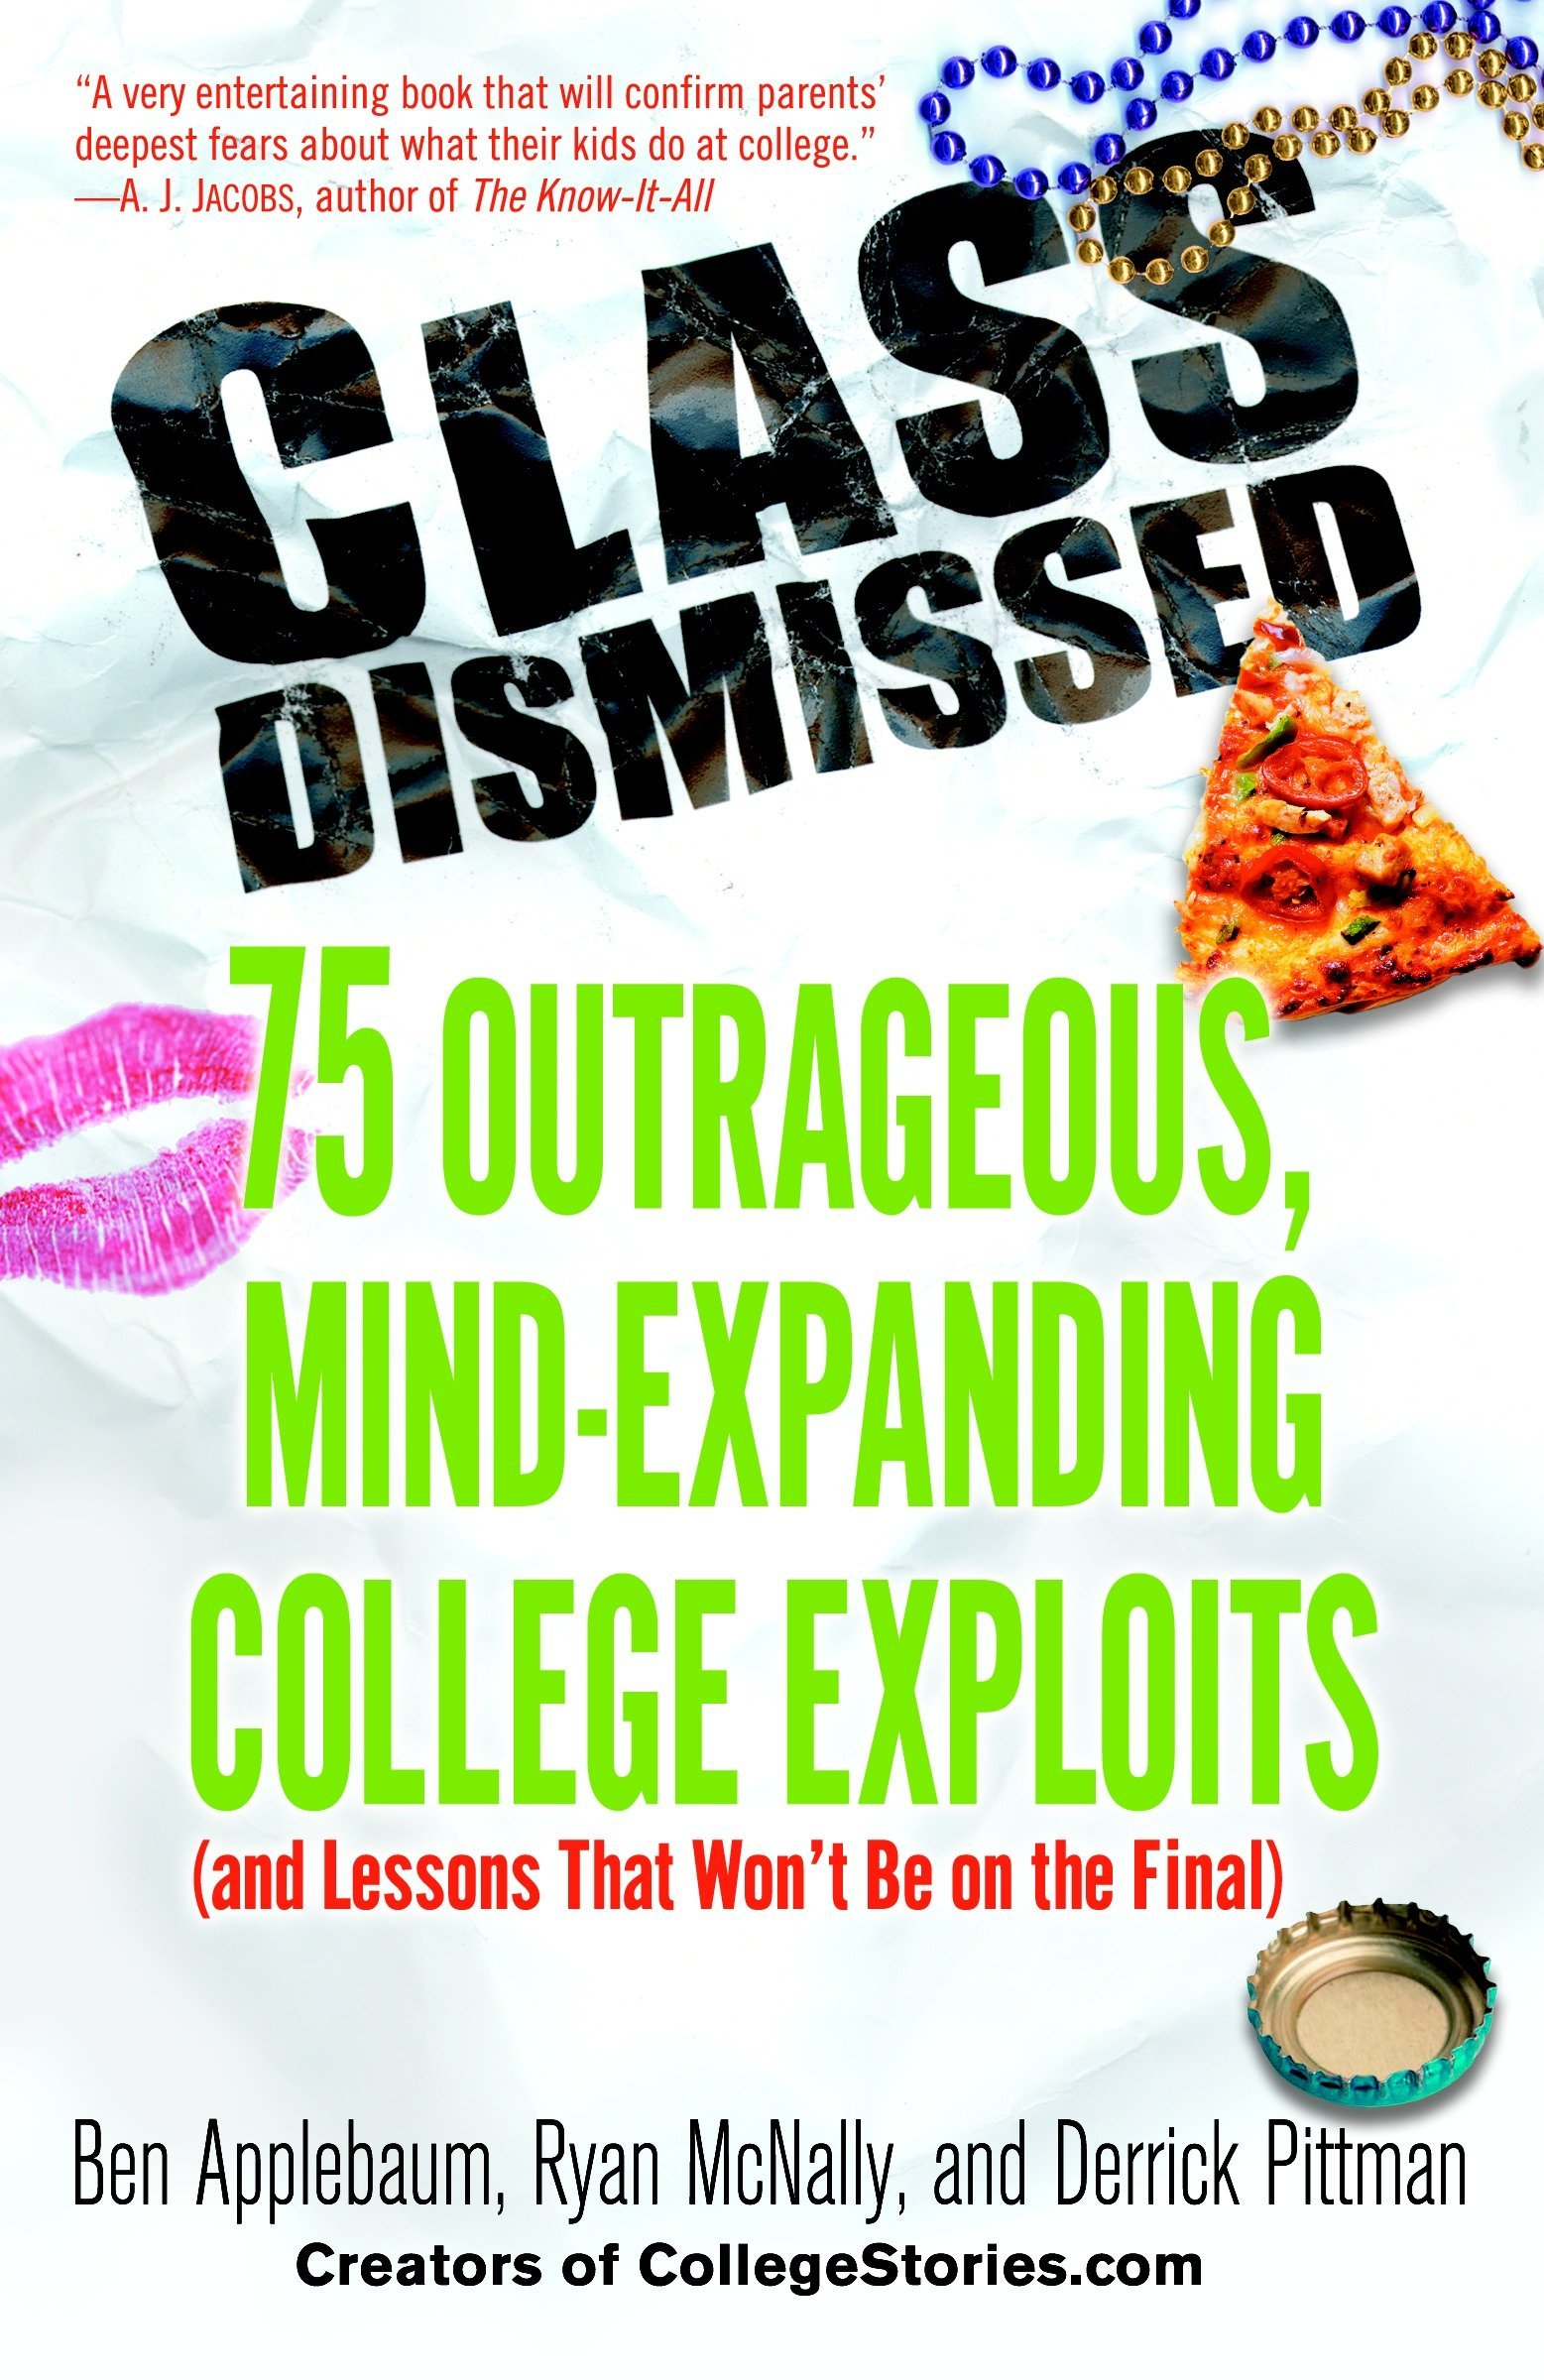 Download Class Dismissed: 75 Outrageous, Mind-Expanding College Exploits (and Lessons That Won't Be on the Final) pdf